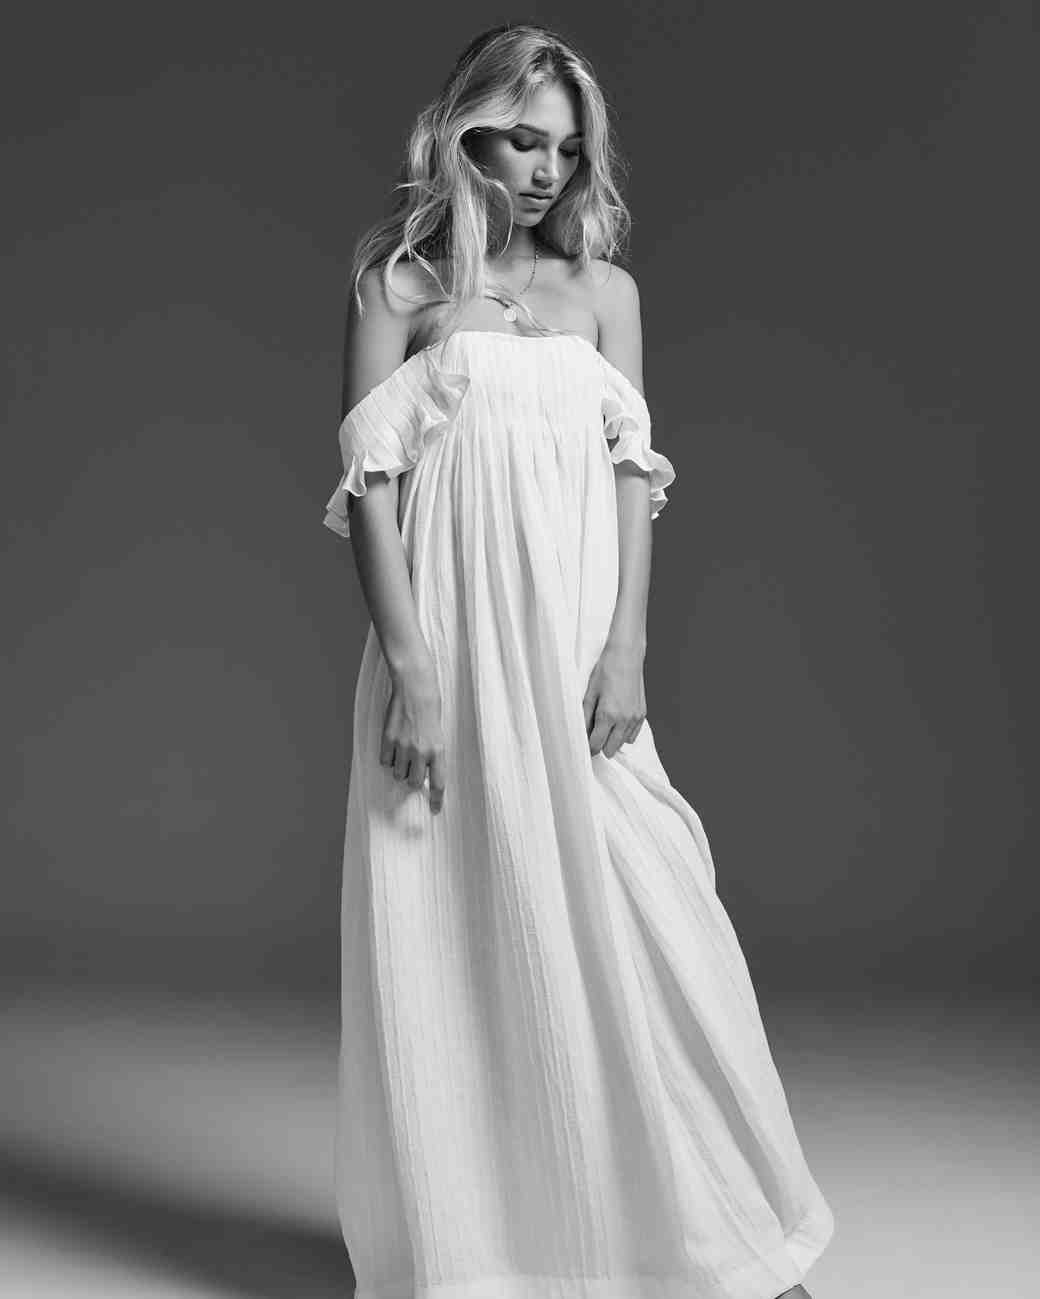 LOVE FIND CO. // The hottest bridal gown trends of 2016 - Lein // Follow @lovefindco on Instagram & Pinterest